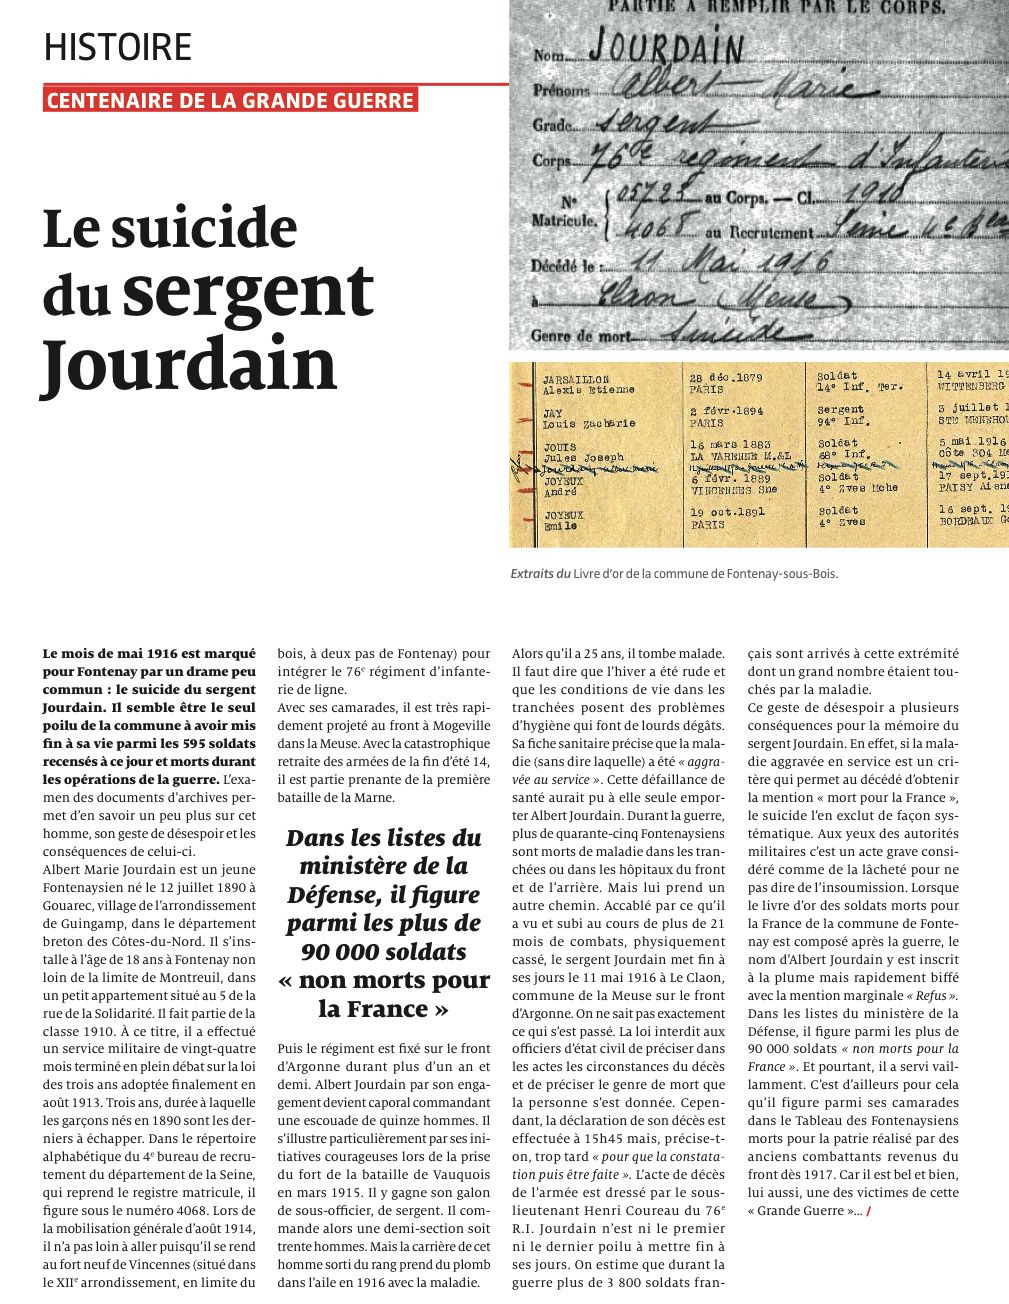 Article du journal A Fontenay n° 120, page 17.